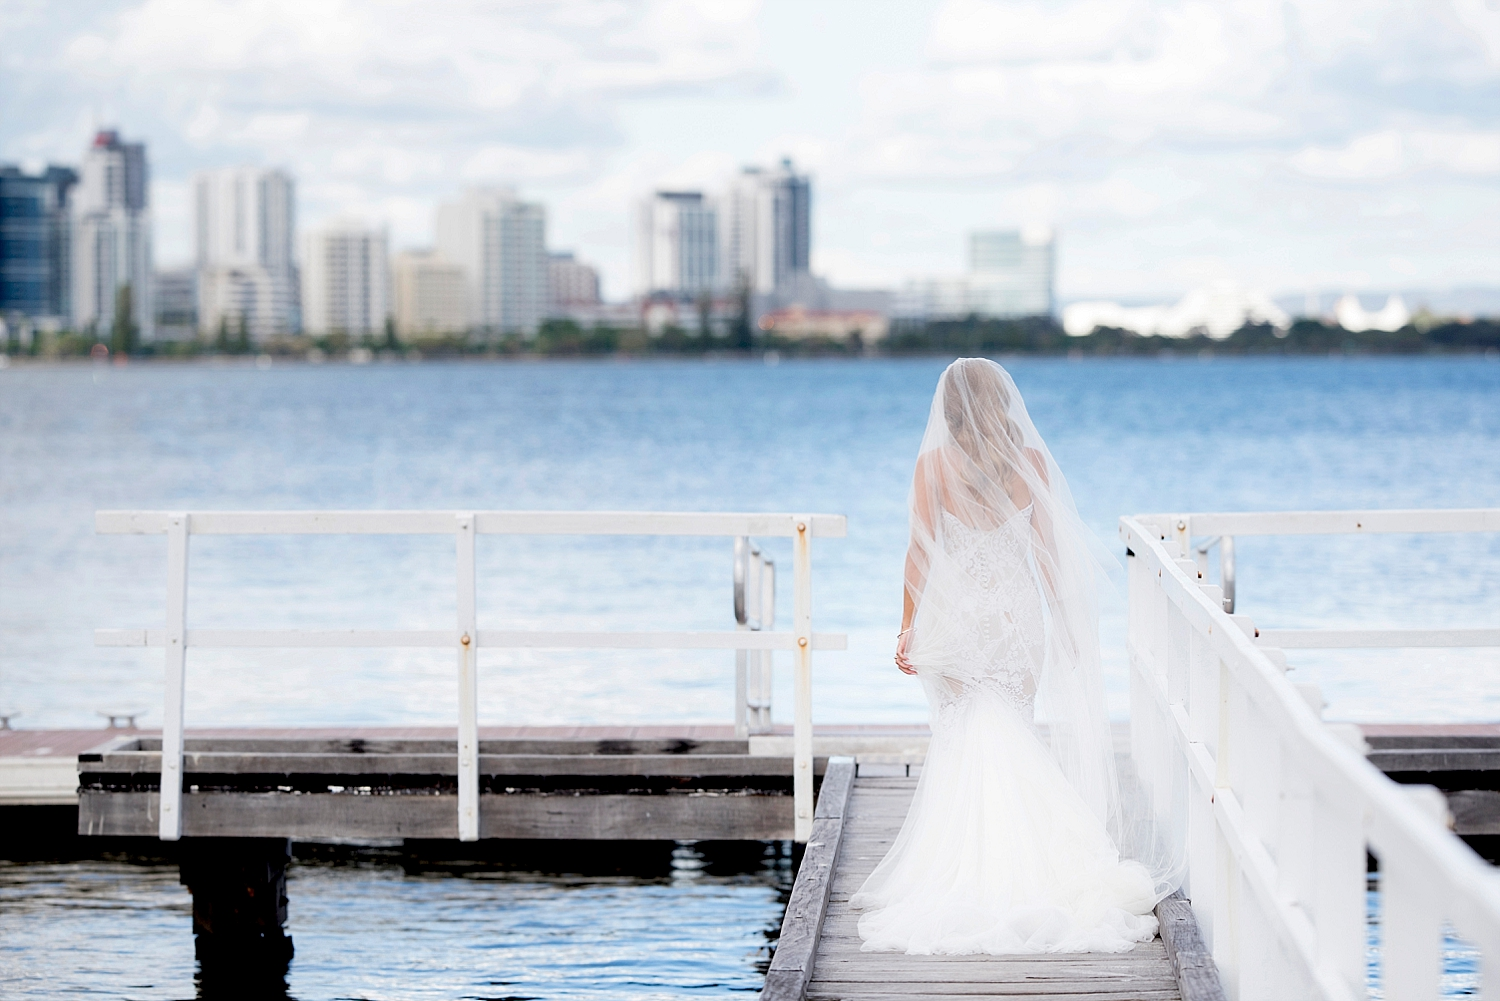 26 south perth fishing jetty with bride wedding perth deray simcoe.jpg